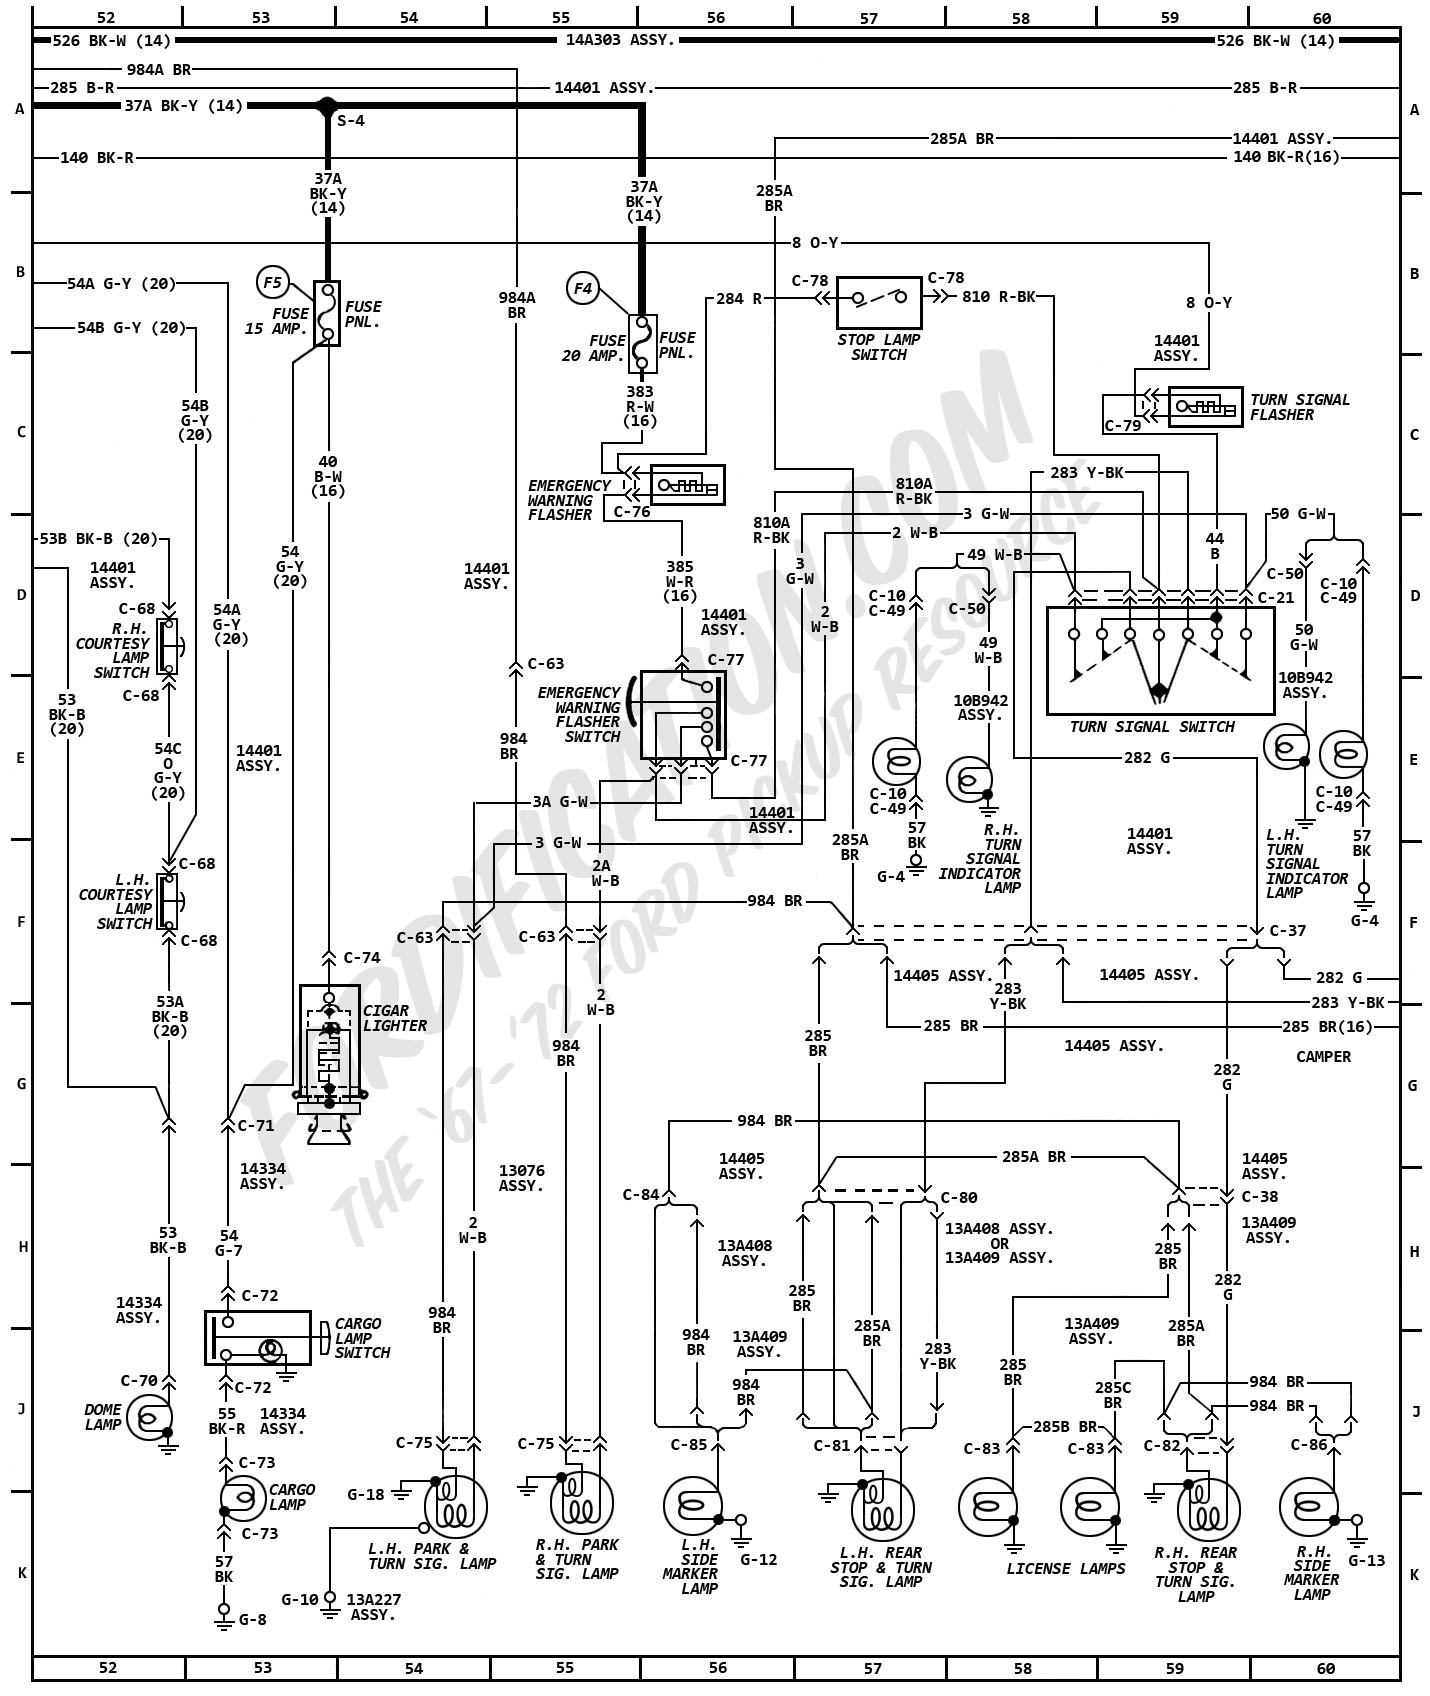 1972 ford truck wiring diagrams fordification com rh fordification com 1970 ford f100 wiring diagram 1970 ford f100 wiring diagram